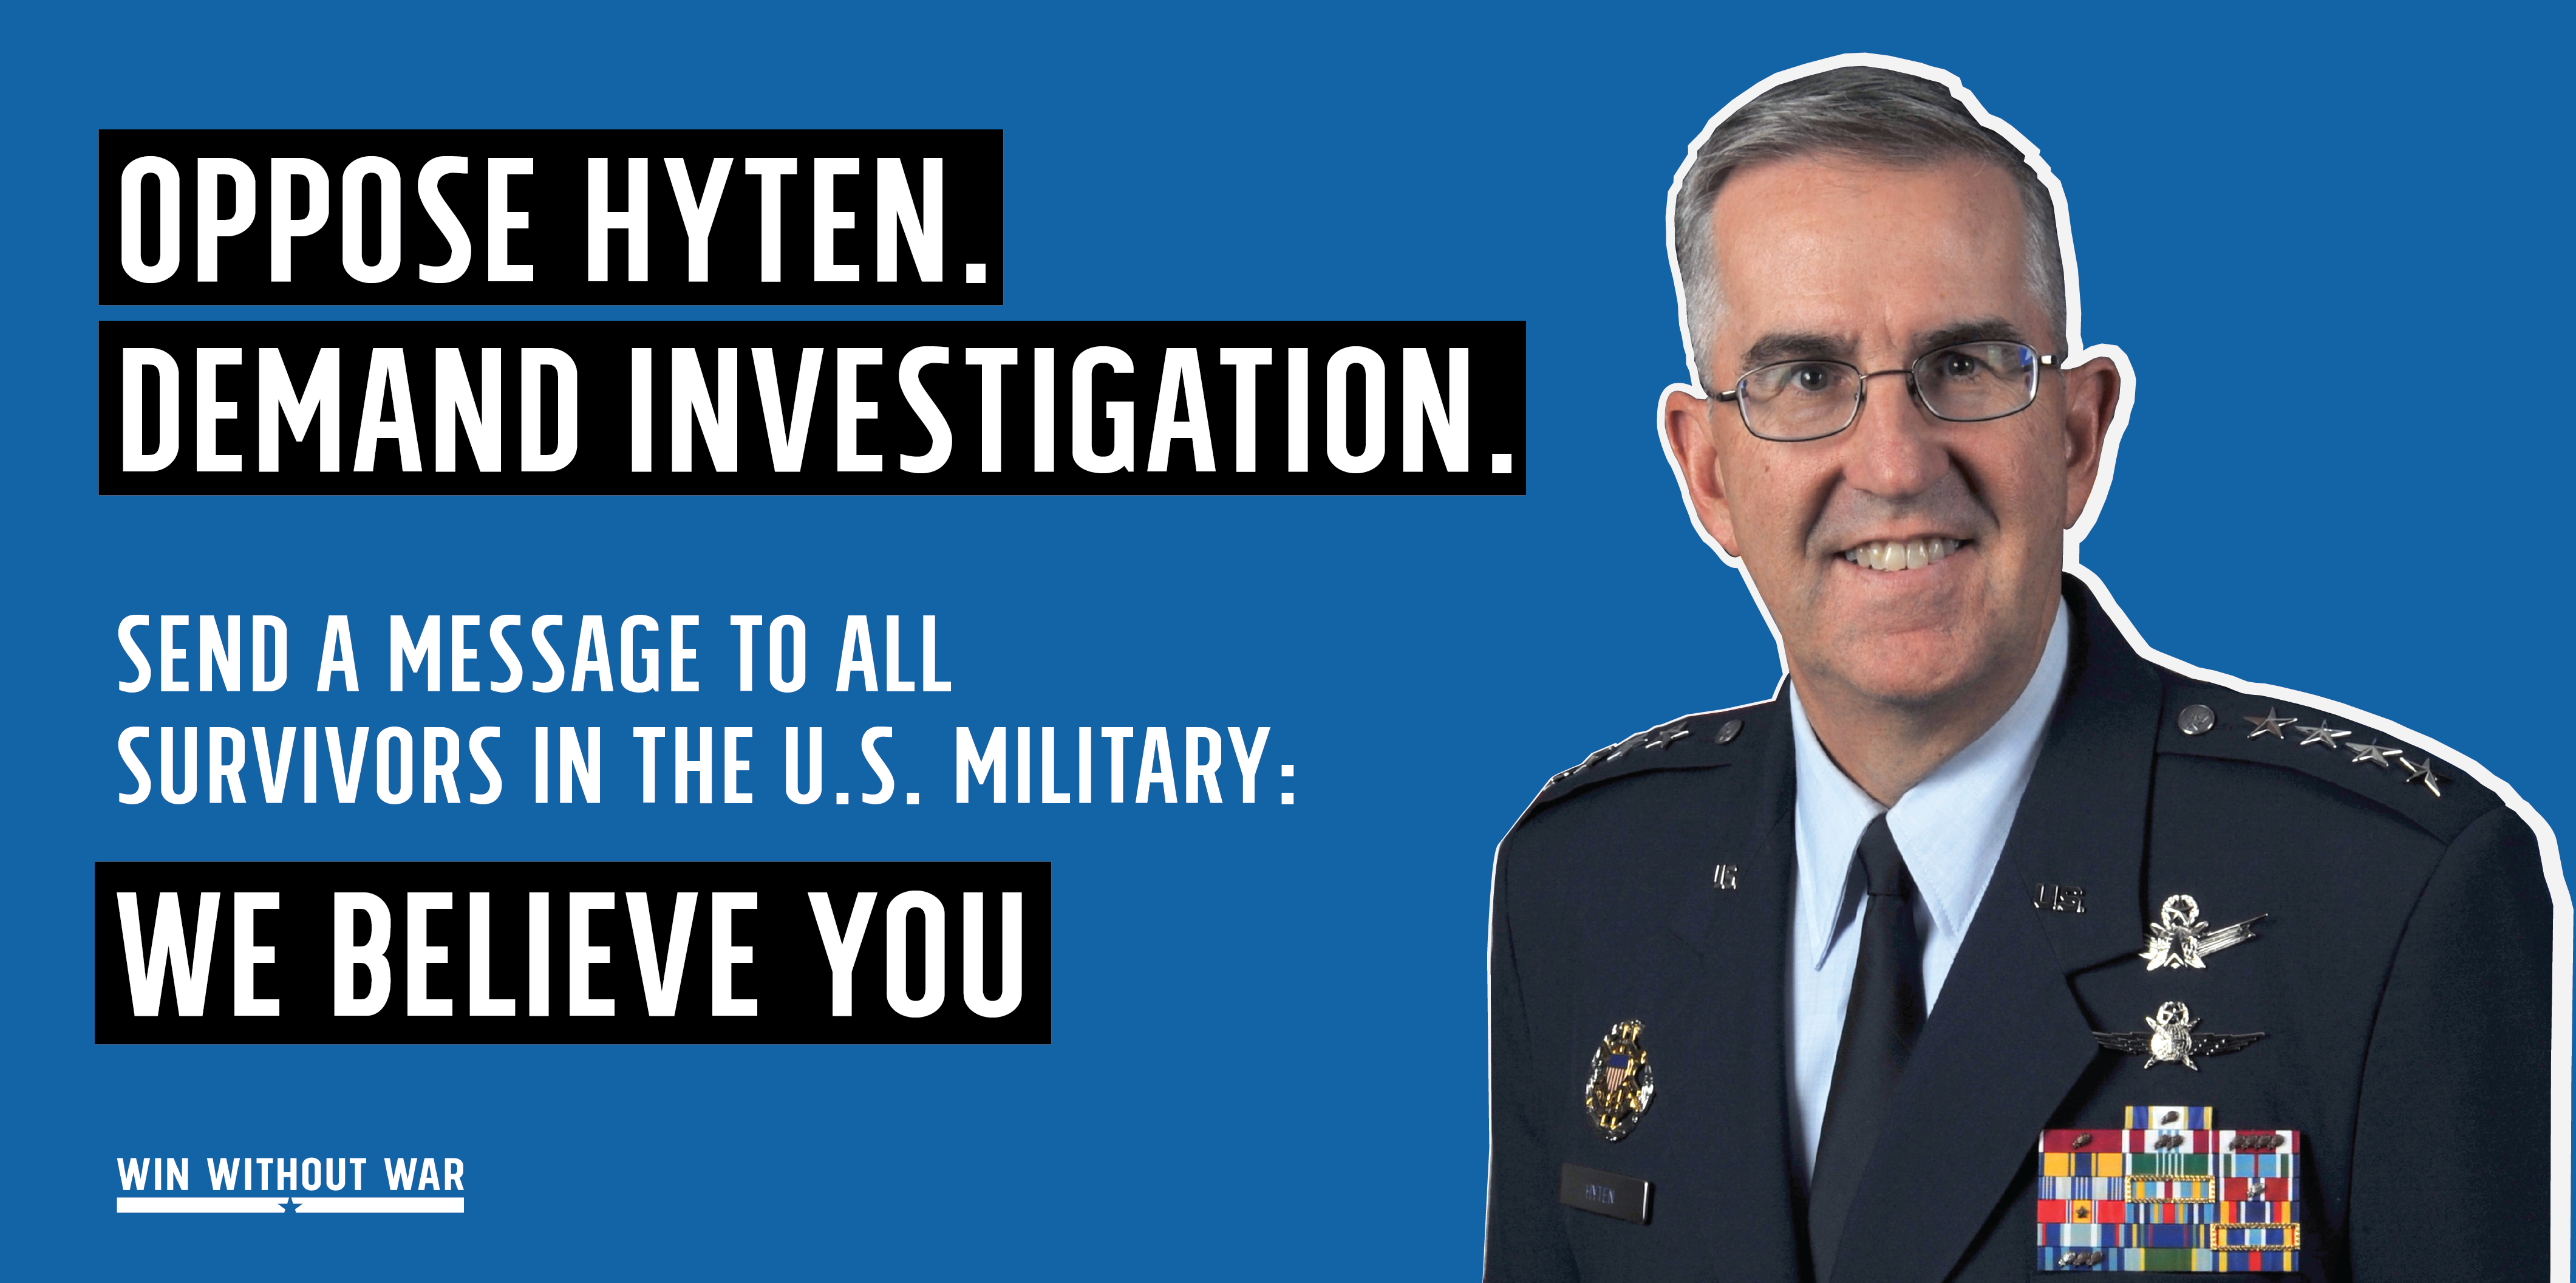 Tell the Senate: Oppose Hyten's confirmation!